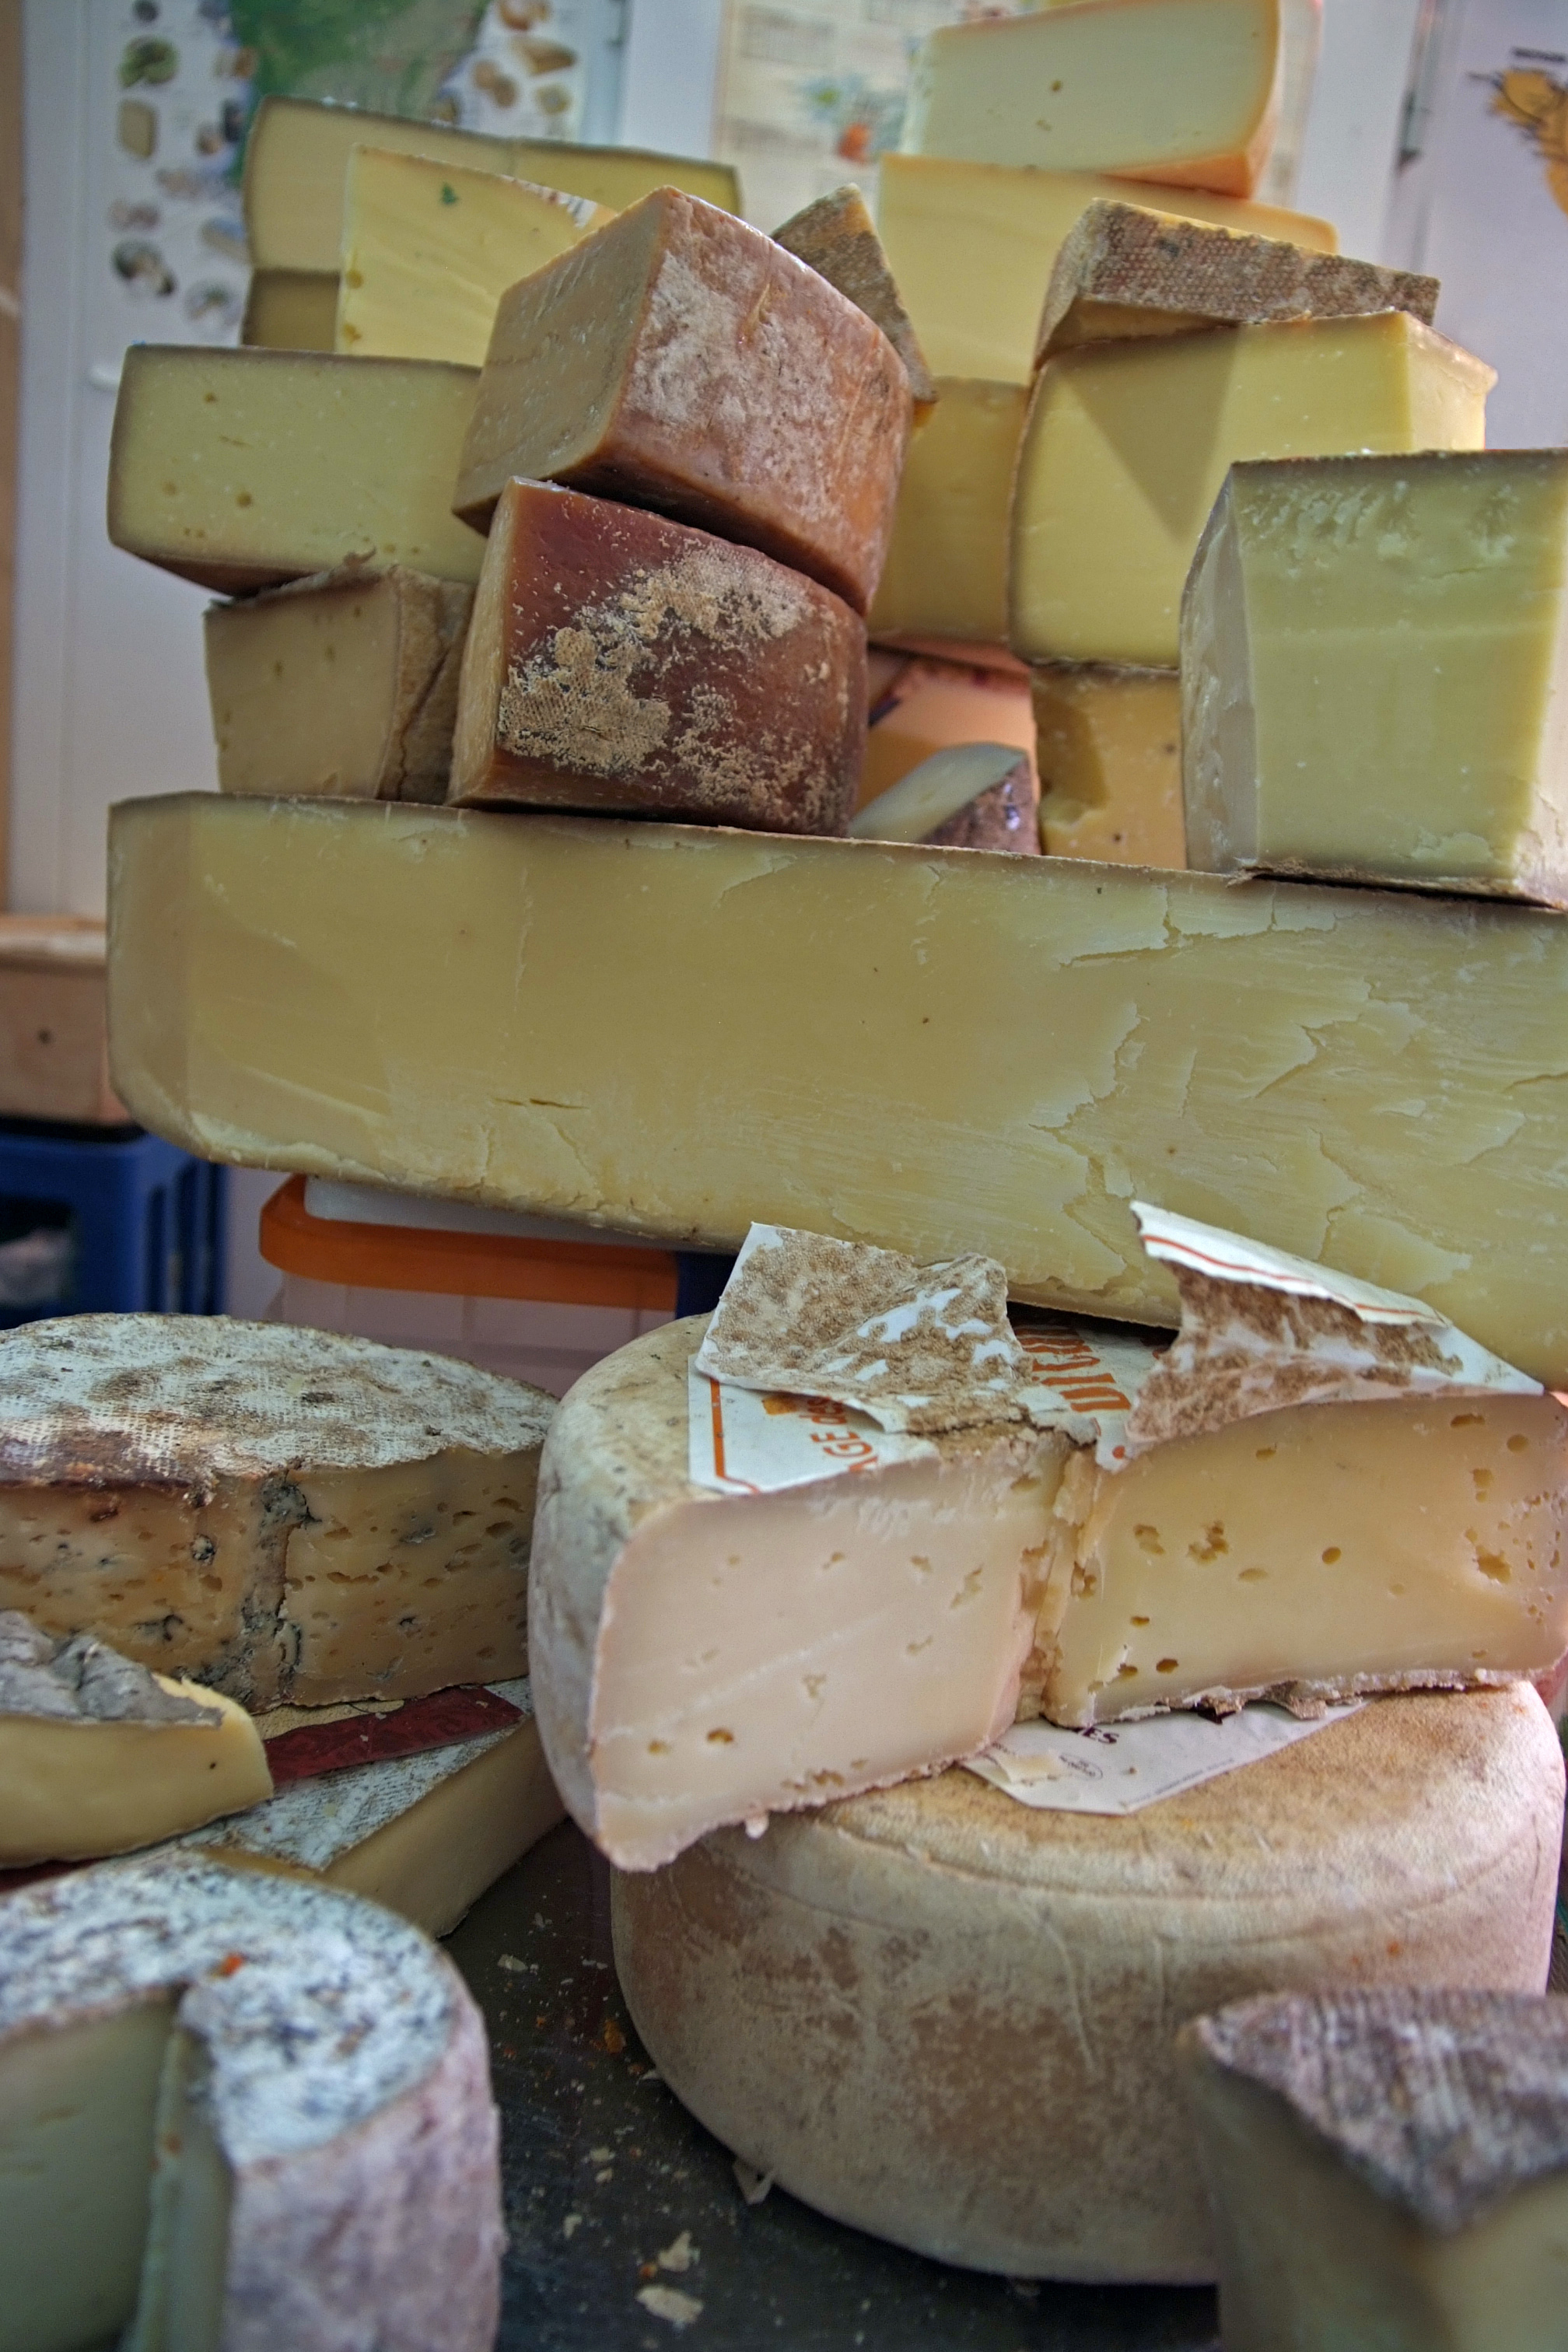 A towering pile of cheeses